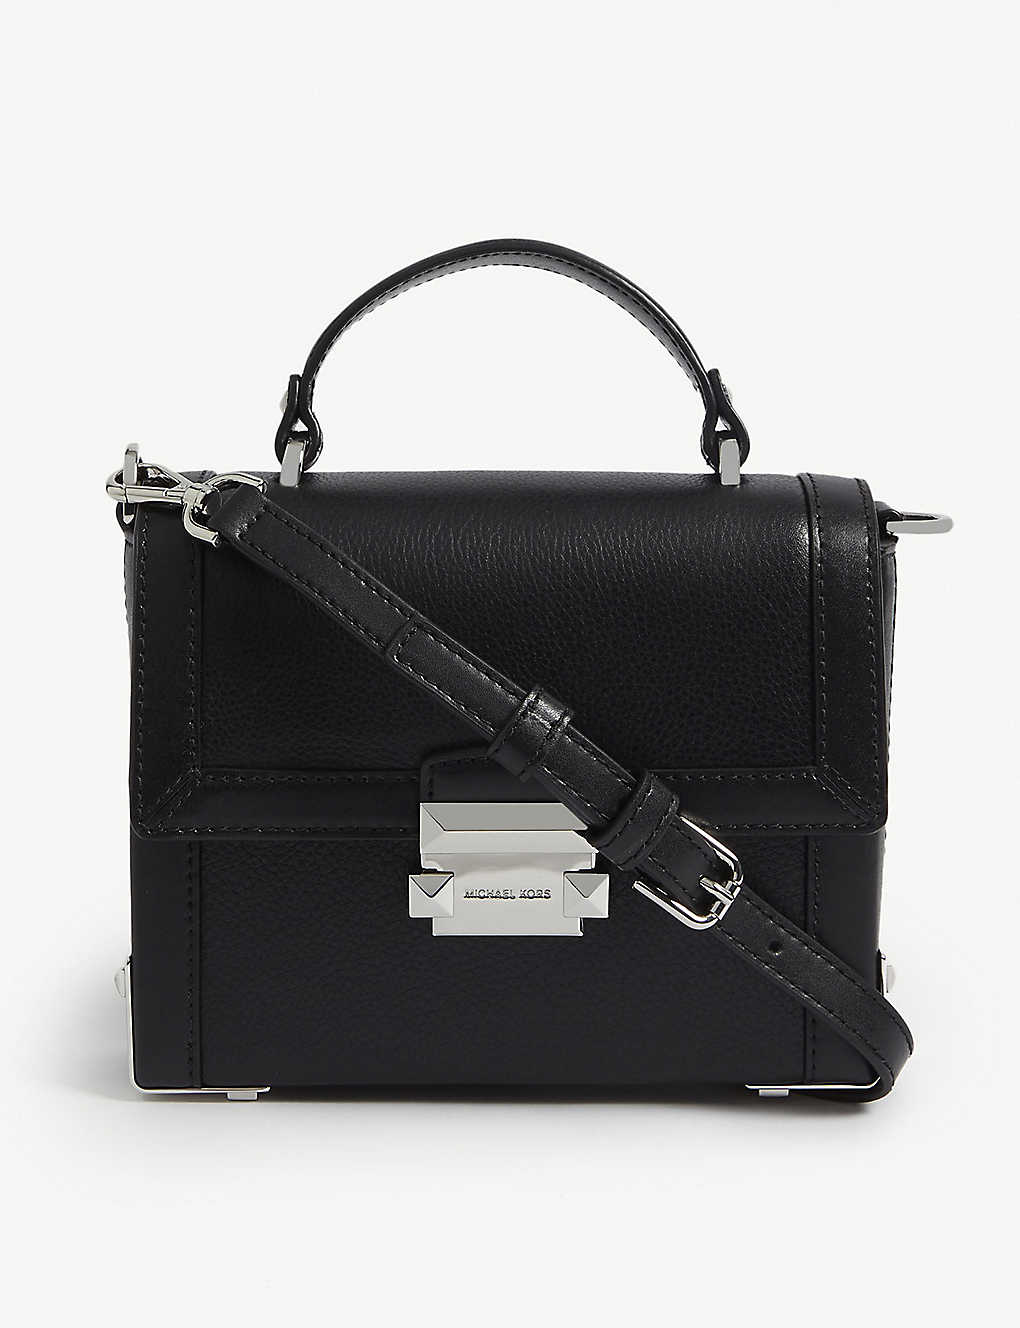 ac2030a9685 MICHAEL MICHAEL KORS - Jayne pebbled leather trunk bag   Selfridges.com